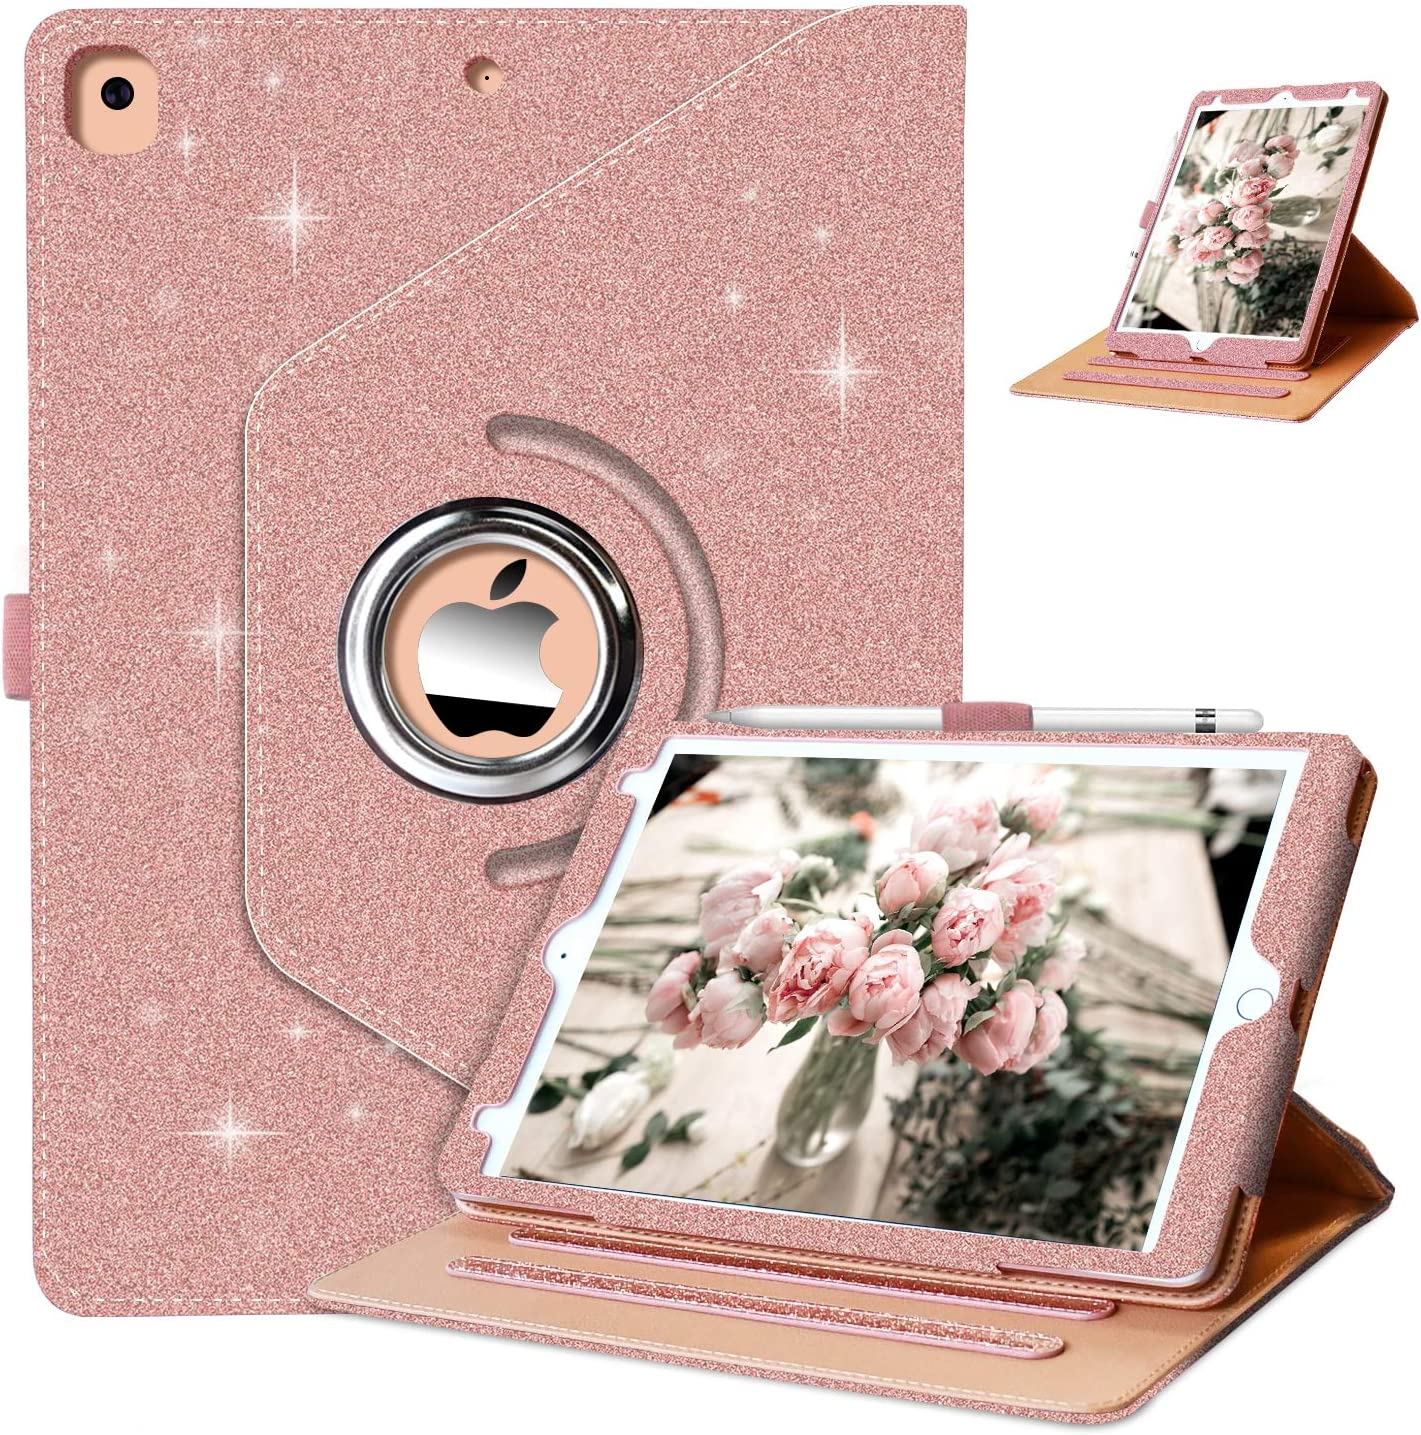 Grifobes iPad 8th/7th Generation Case,iPad 10.2 case,360 Degree Rotating Stand PU Leather Protective Cover,Glitter Sparkly Case for Girls Women ,Auto Wake/Sleep(Rose Gold)